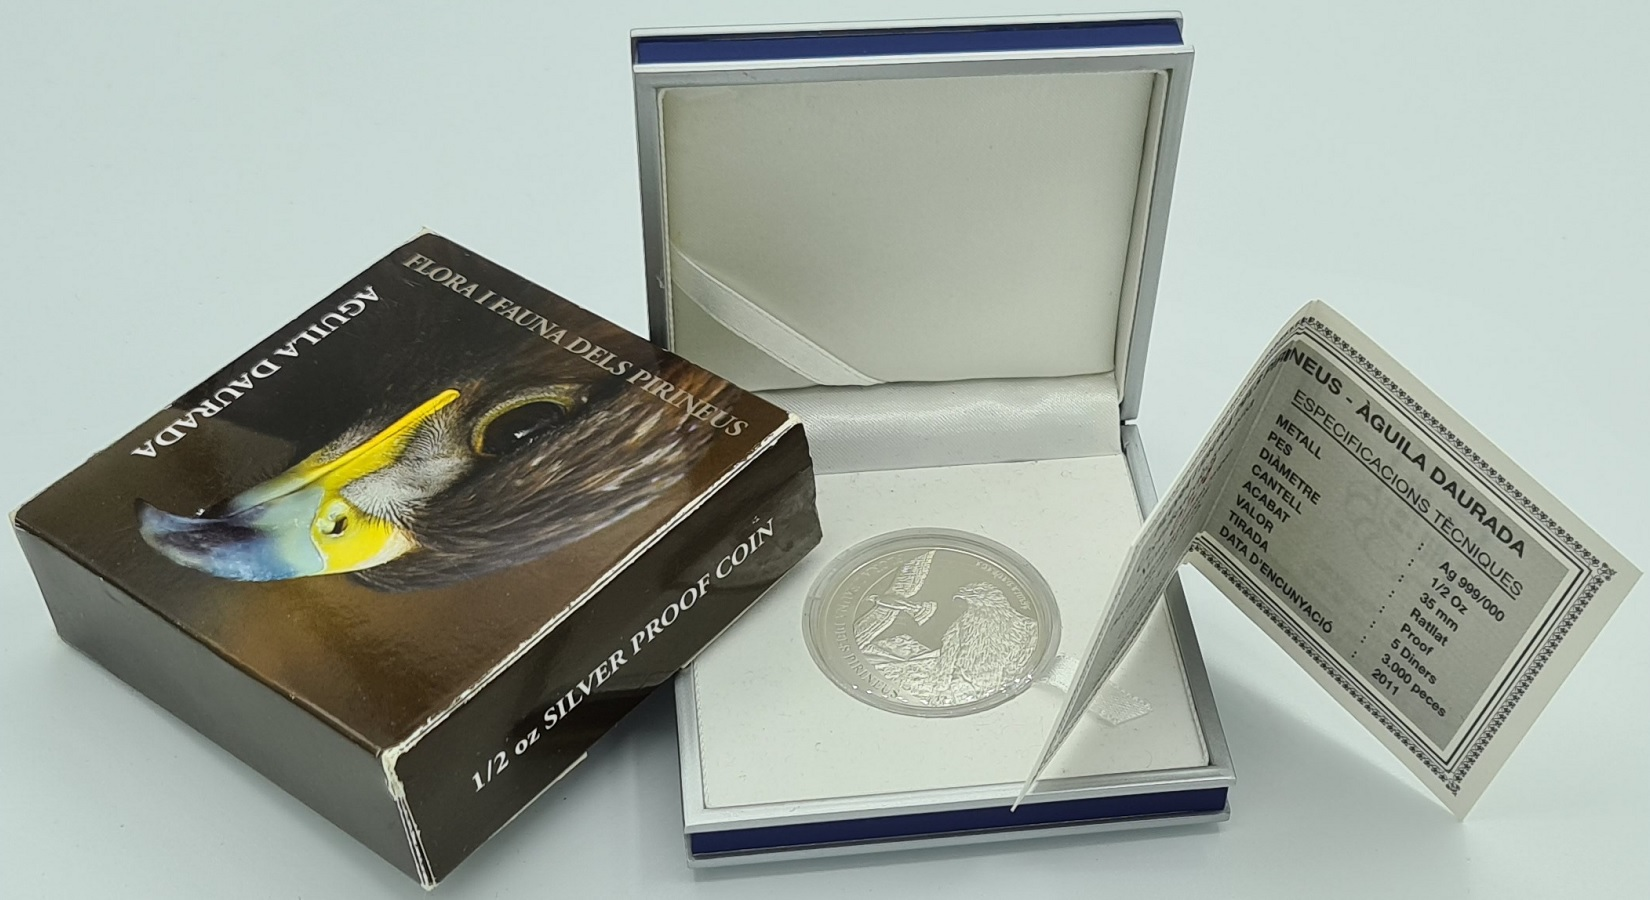 (W009.500.2012.0,50.oz.Ag.1.000000001) 5 Diners Andorra 2011 0.5 oz Proof Ag - Golden eagle (certificate) (zoom)